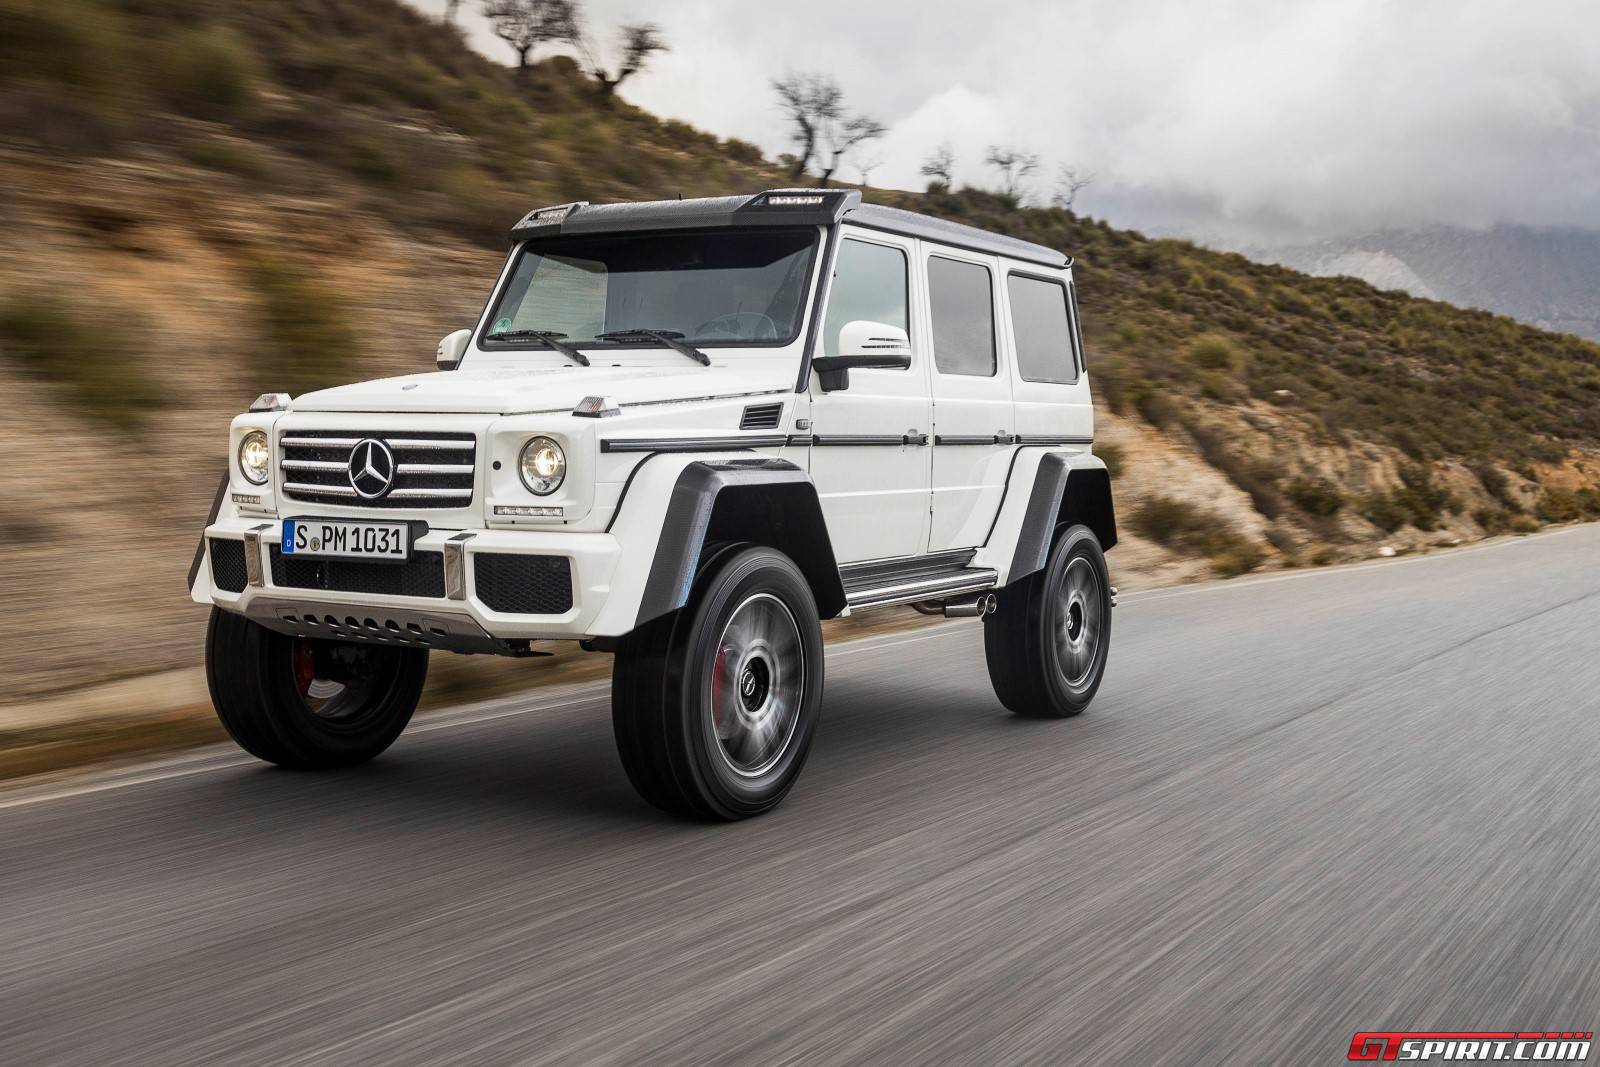 Mercedes benz g500 4x4 square mercedes benz for Mercedes benz g class parts